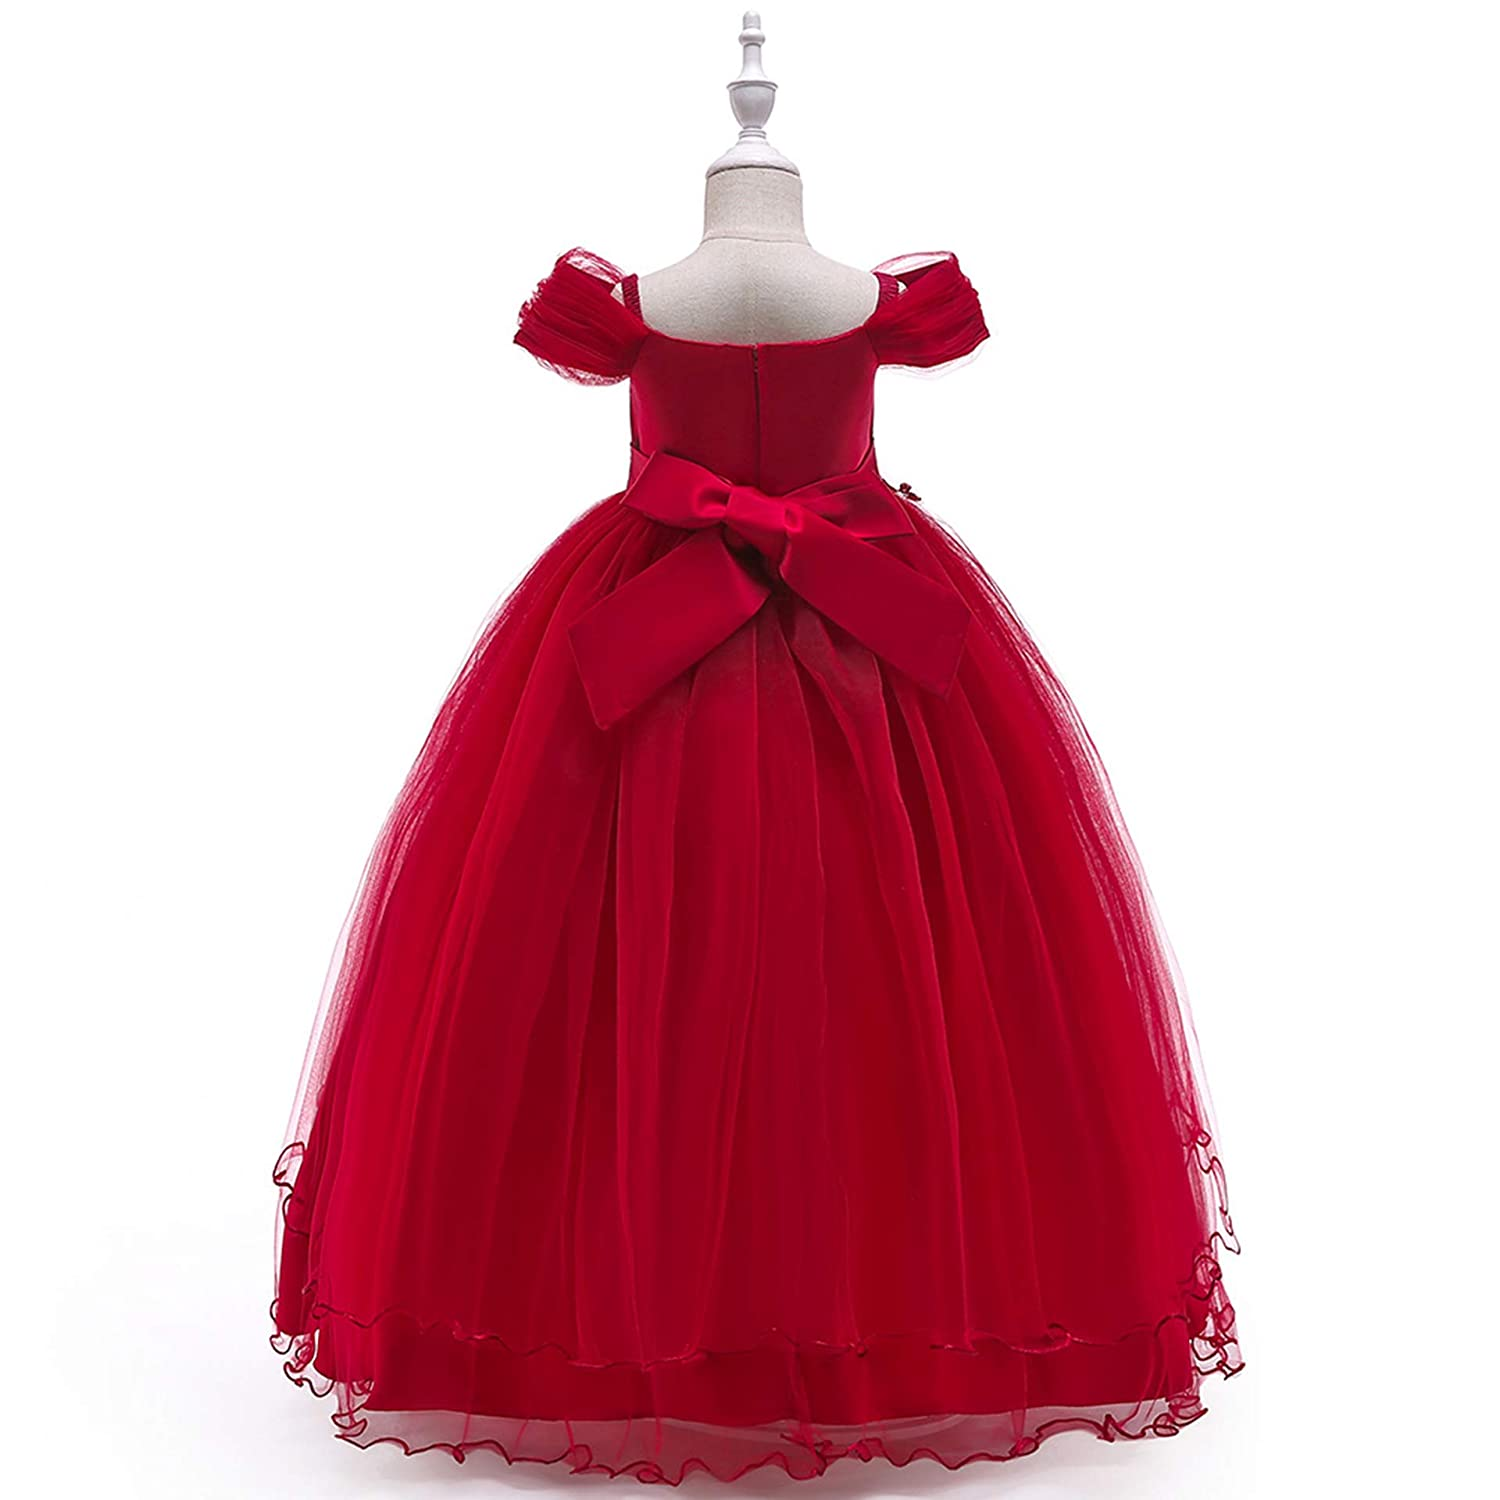 b3e5895c175 Amazon.com: NOMSOCR Kids Lace Costume Long Dress Girl Prom Ball Gown  Christmas Party Princess Dresses (3-4 Years, Red): Garden & Outdoor